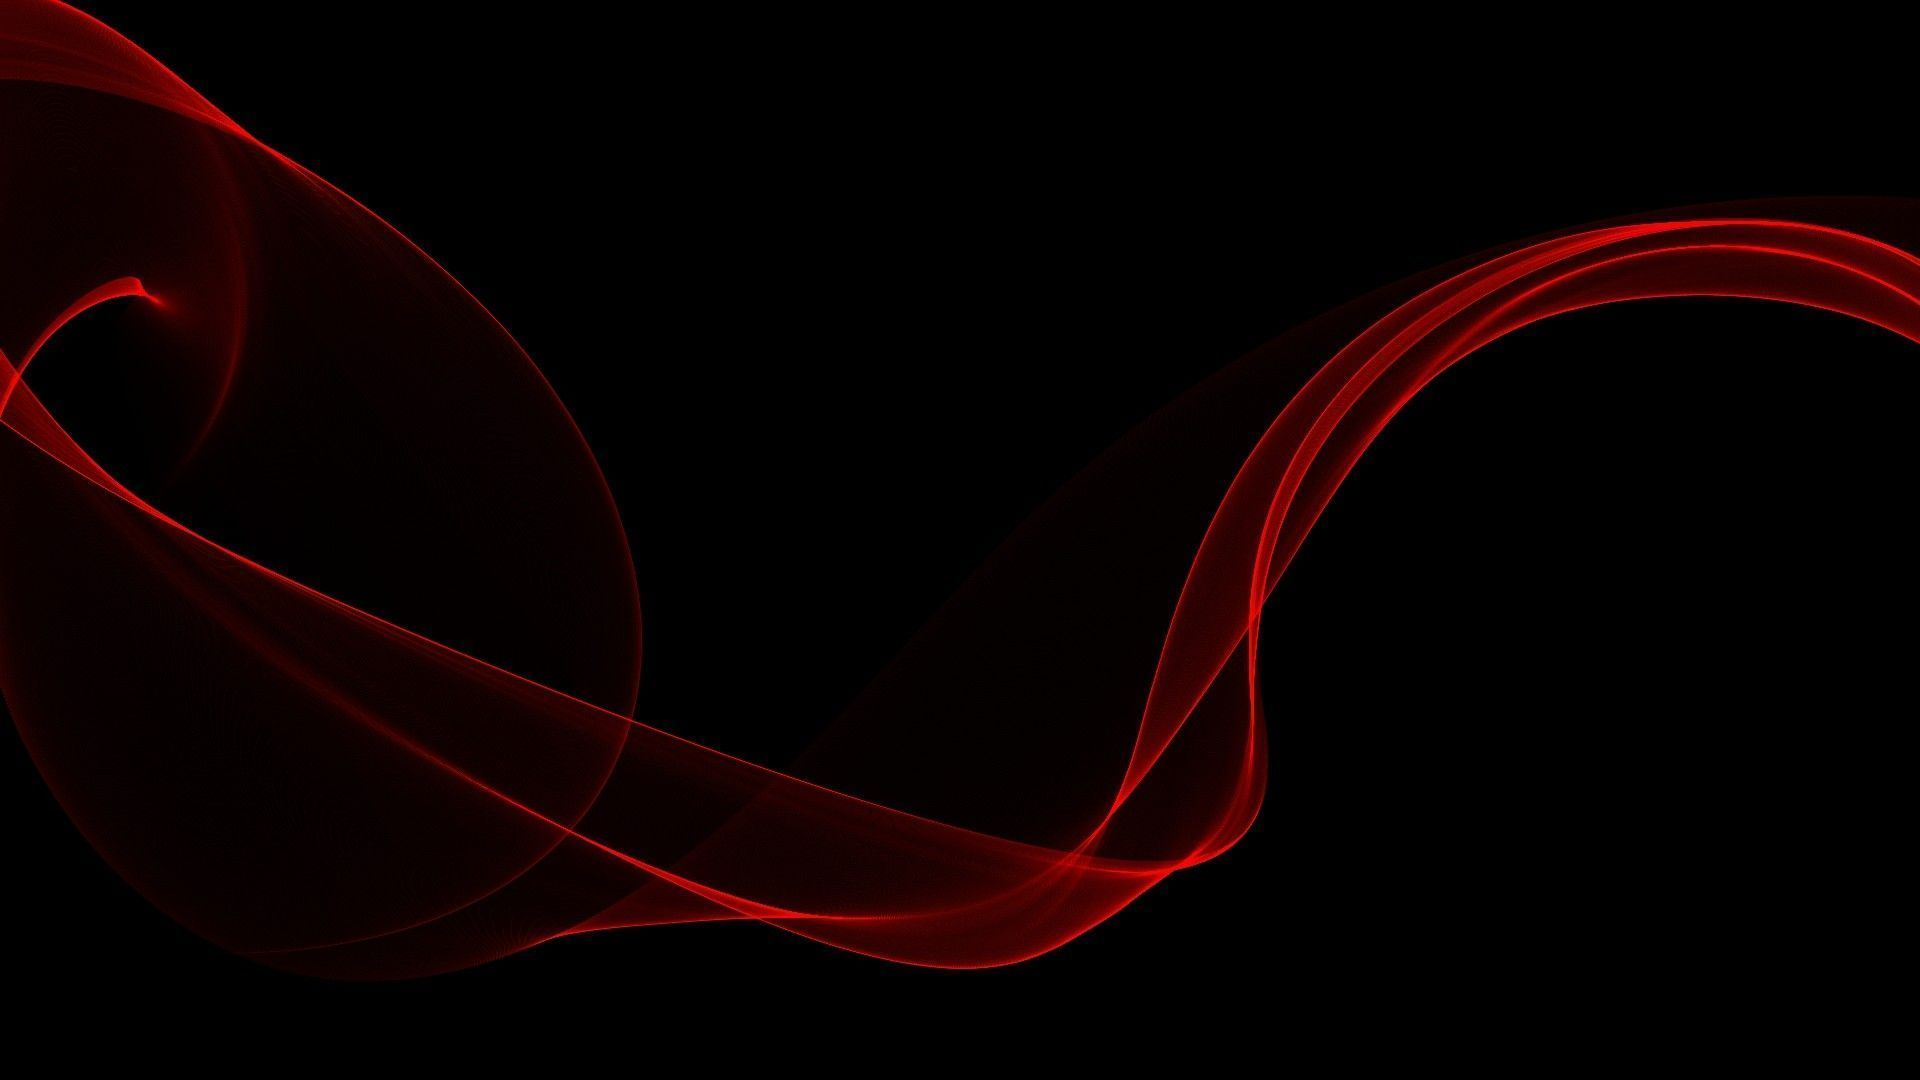 Black And Red Abstract Wallpaper 19